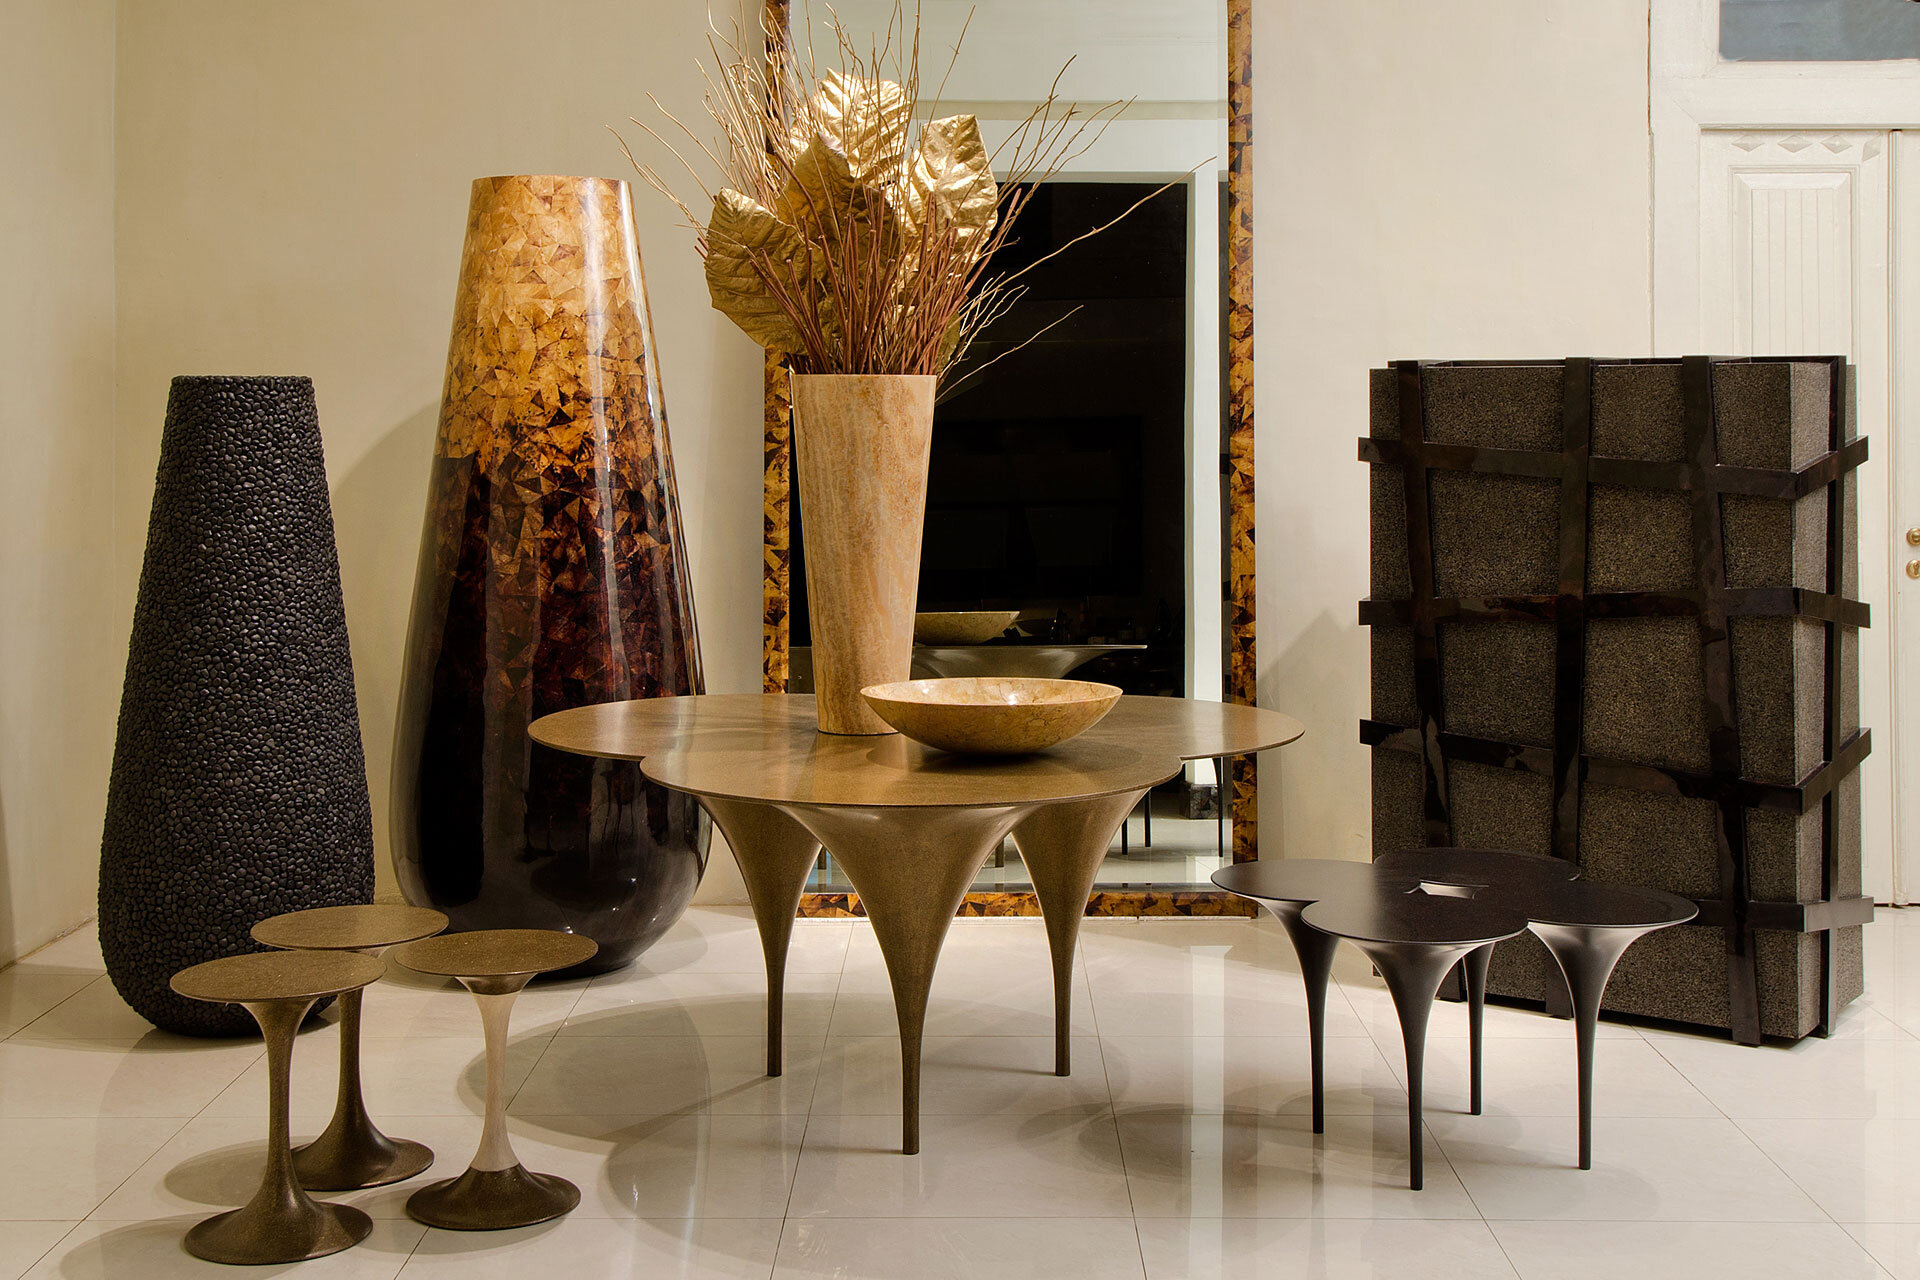 Original Furniture With Innovative Materials By Carlo Pessina